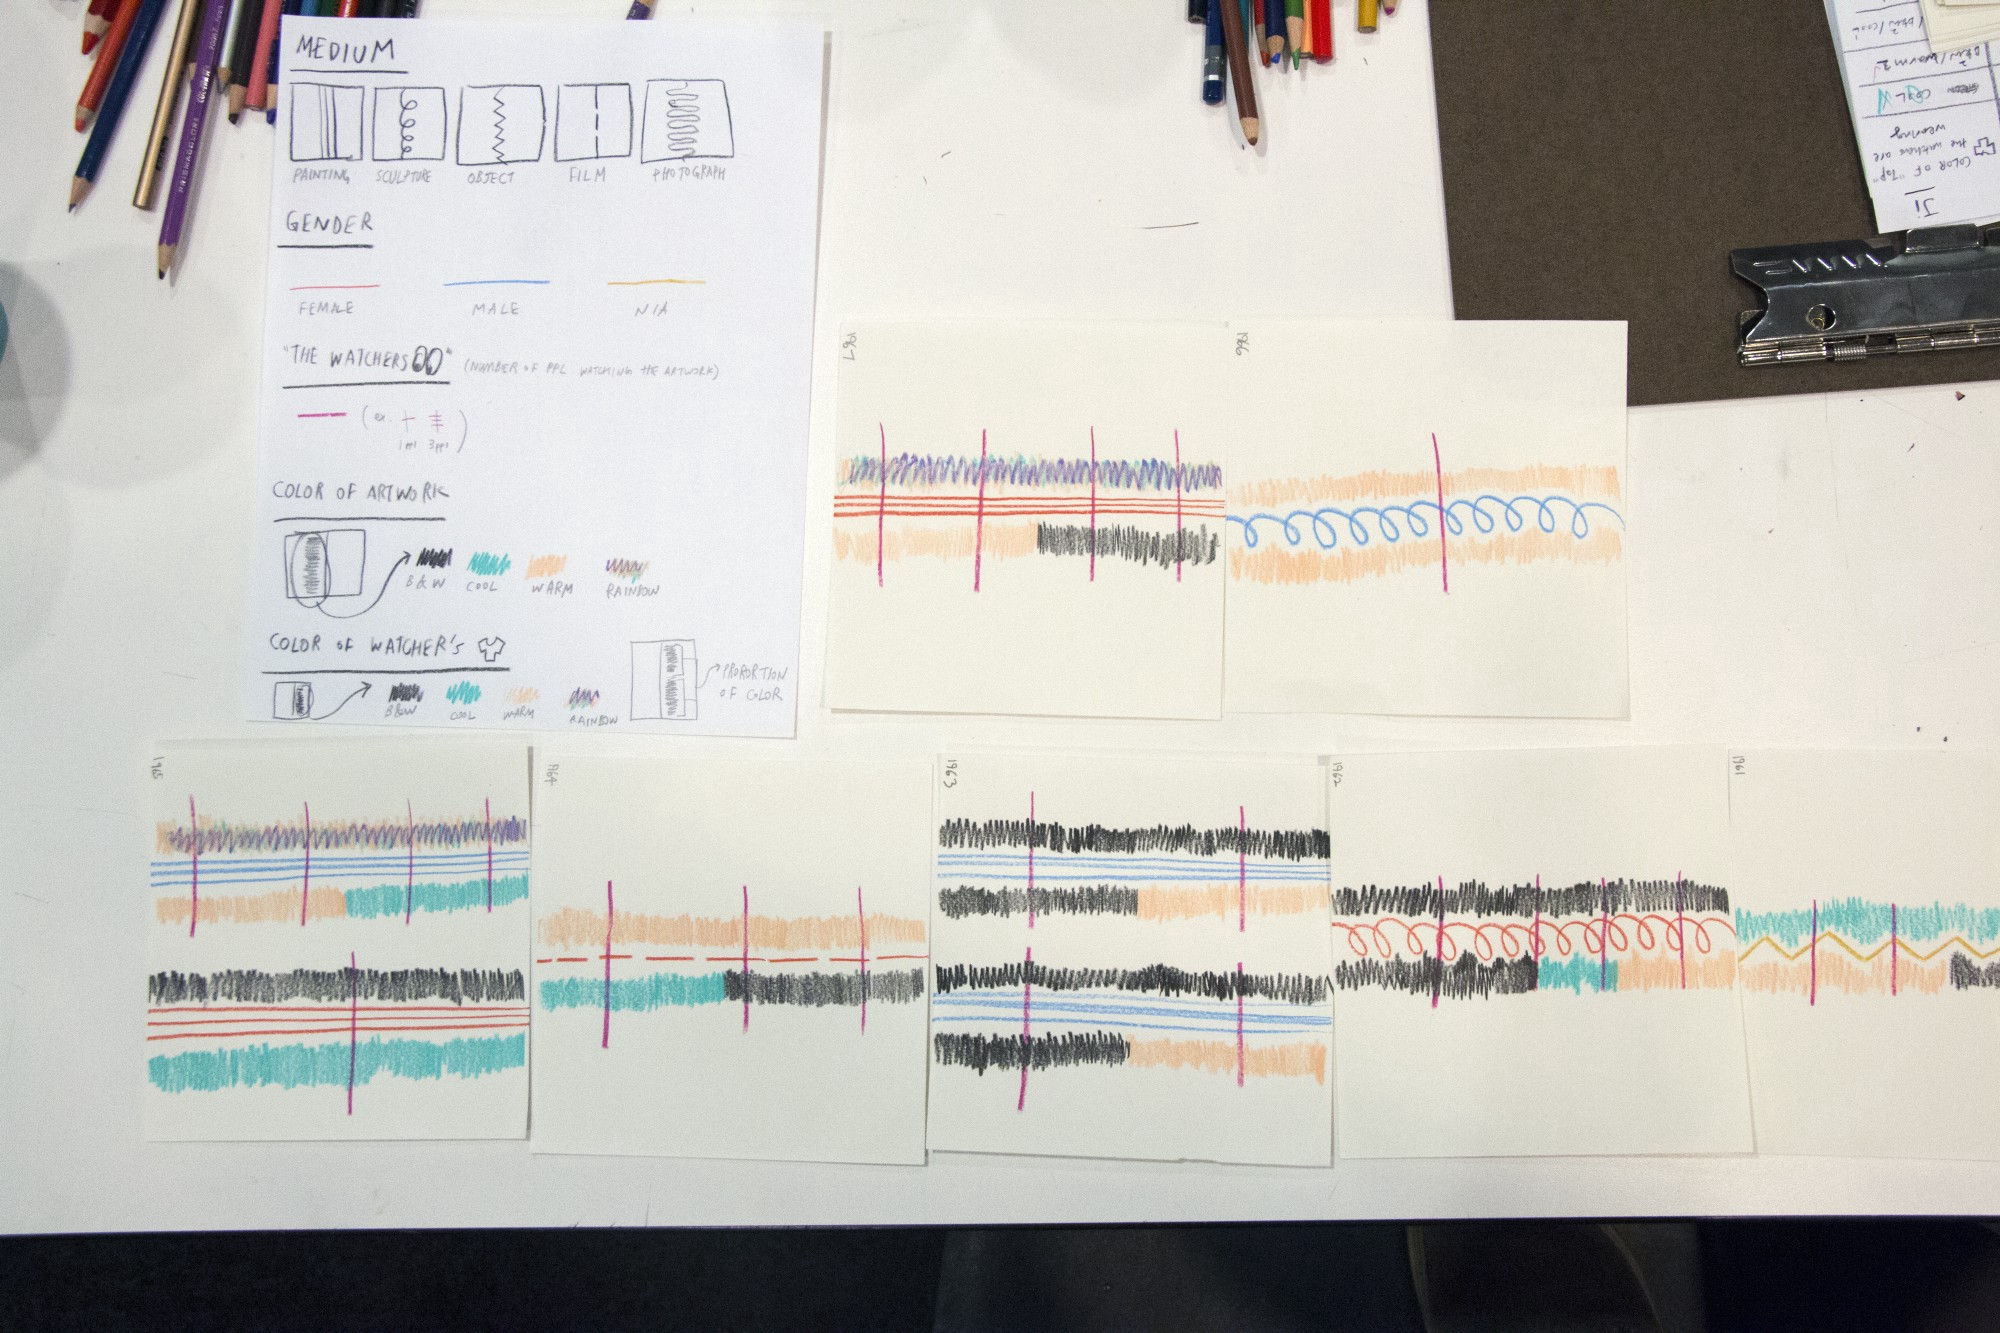 Workshop participant's completed data visualization. Photo: Manuel Martagon. © 2017 The Museum of Modern Art, New York.